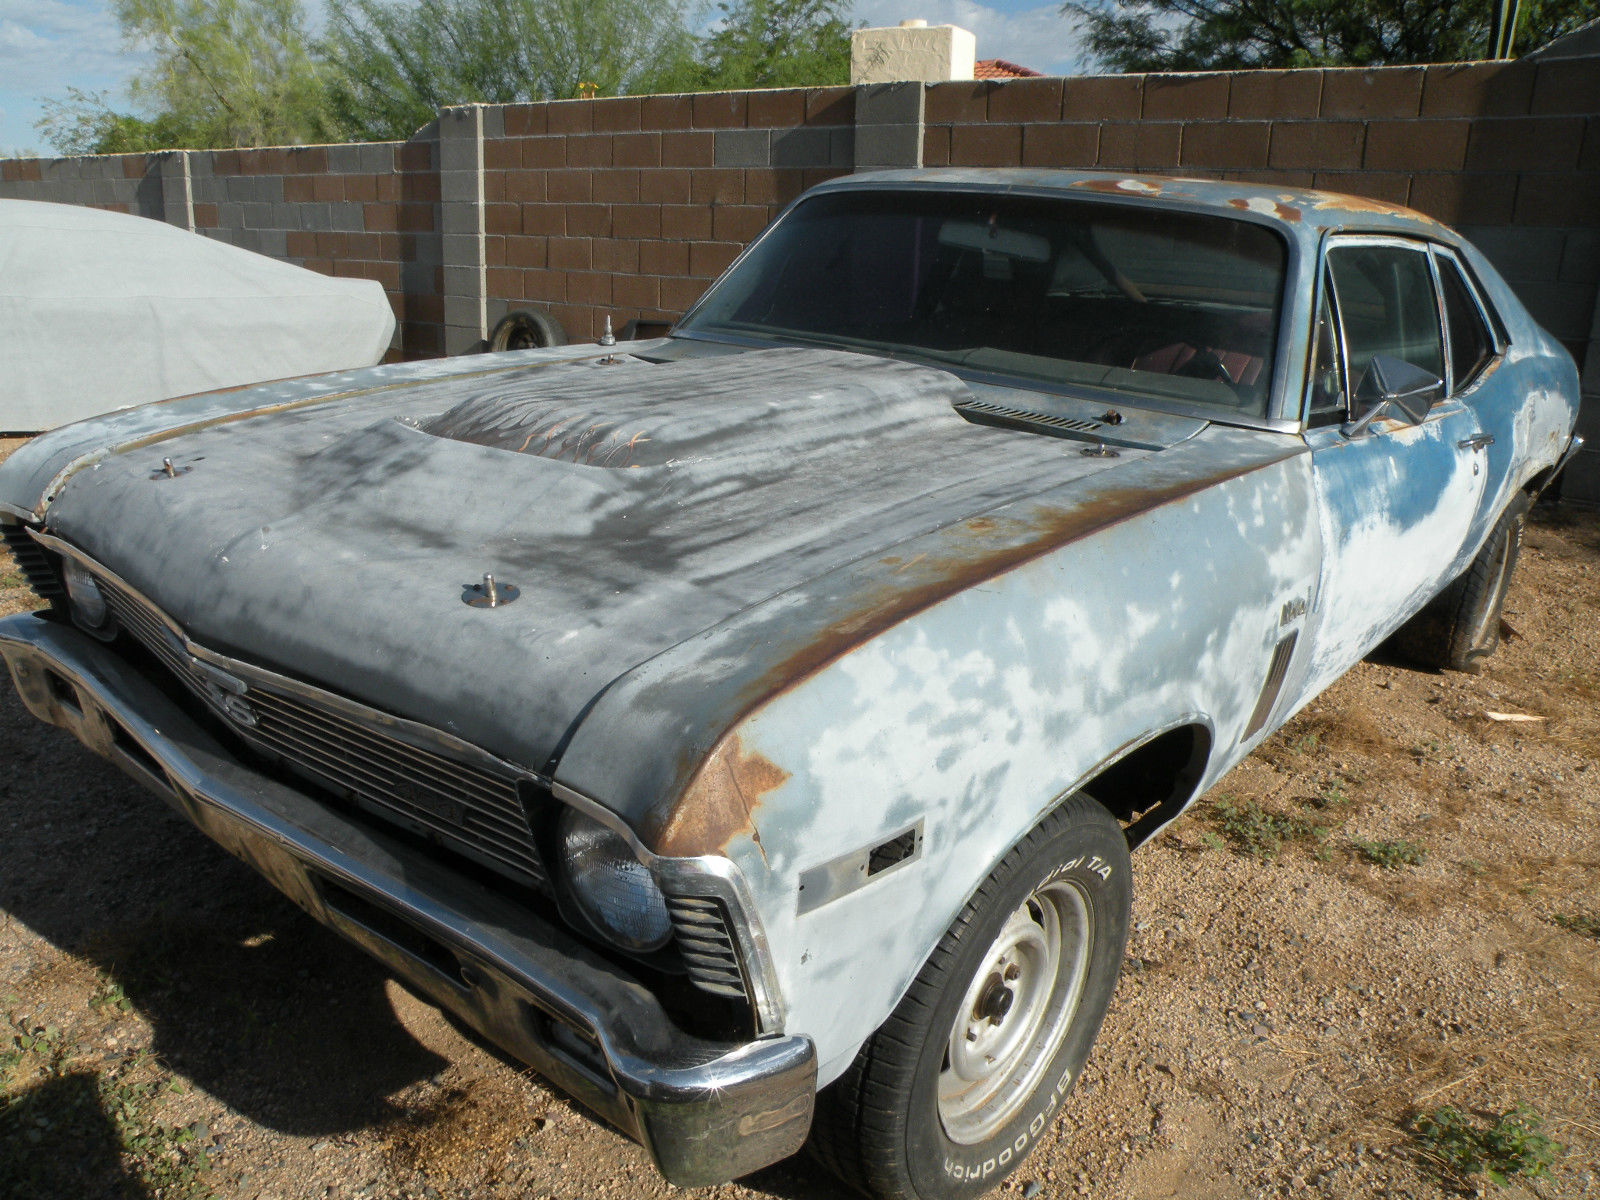 1969 chevrolet nova ss 396 4 speed old vintage race car project for sale. Black Bedroom Furniture Sets. Home Design Ideas